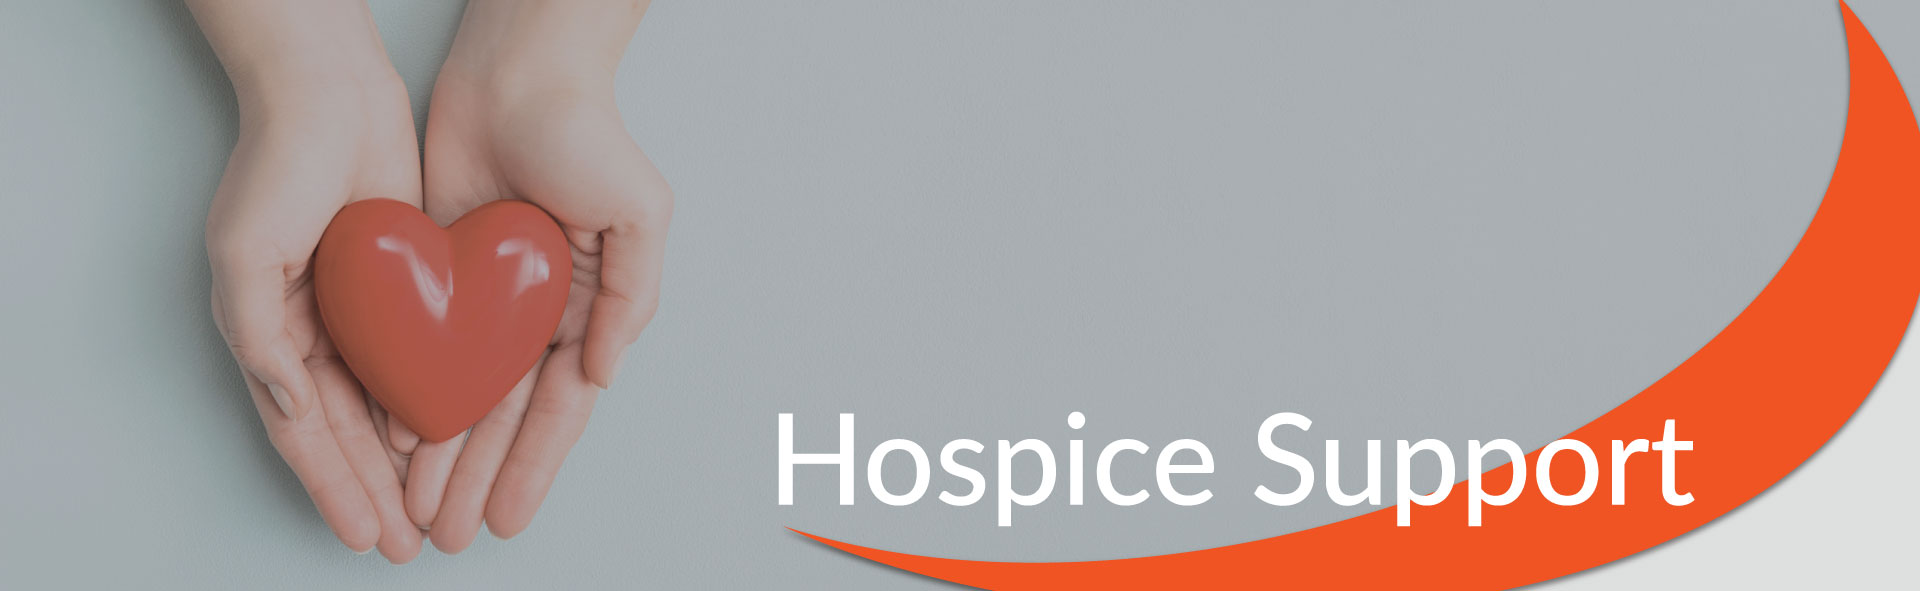 Hospice Support